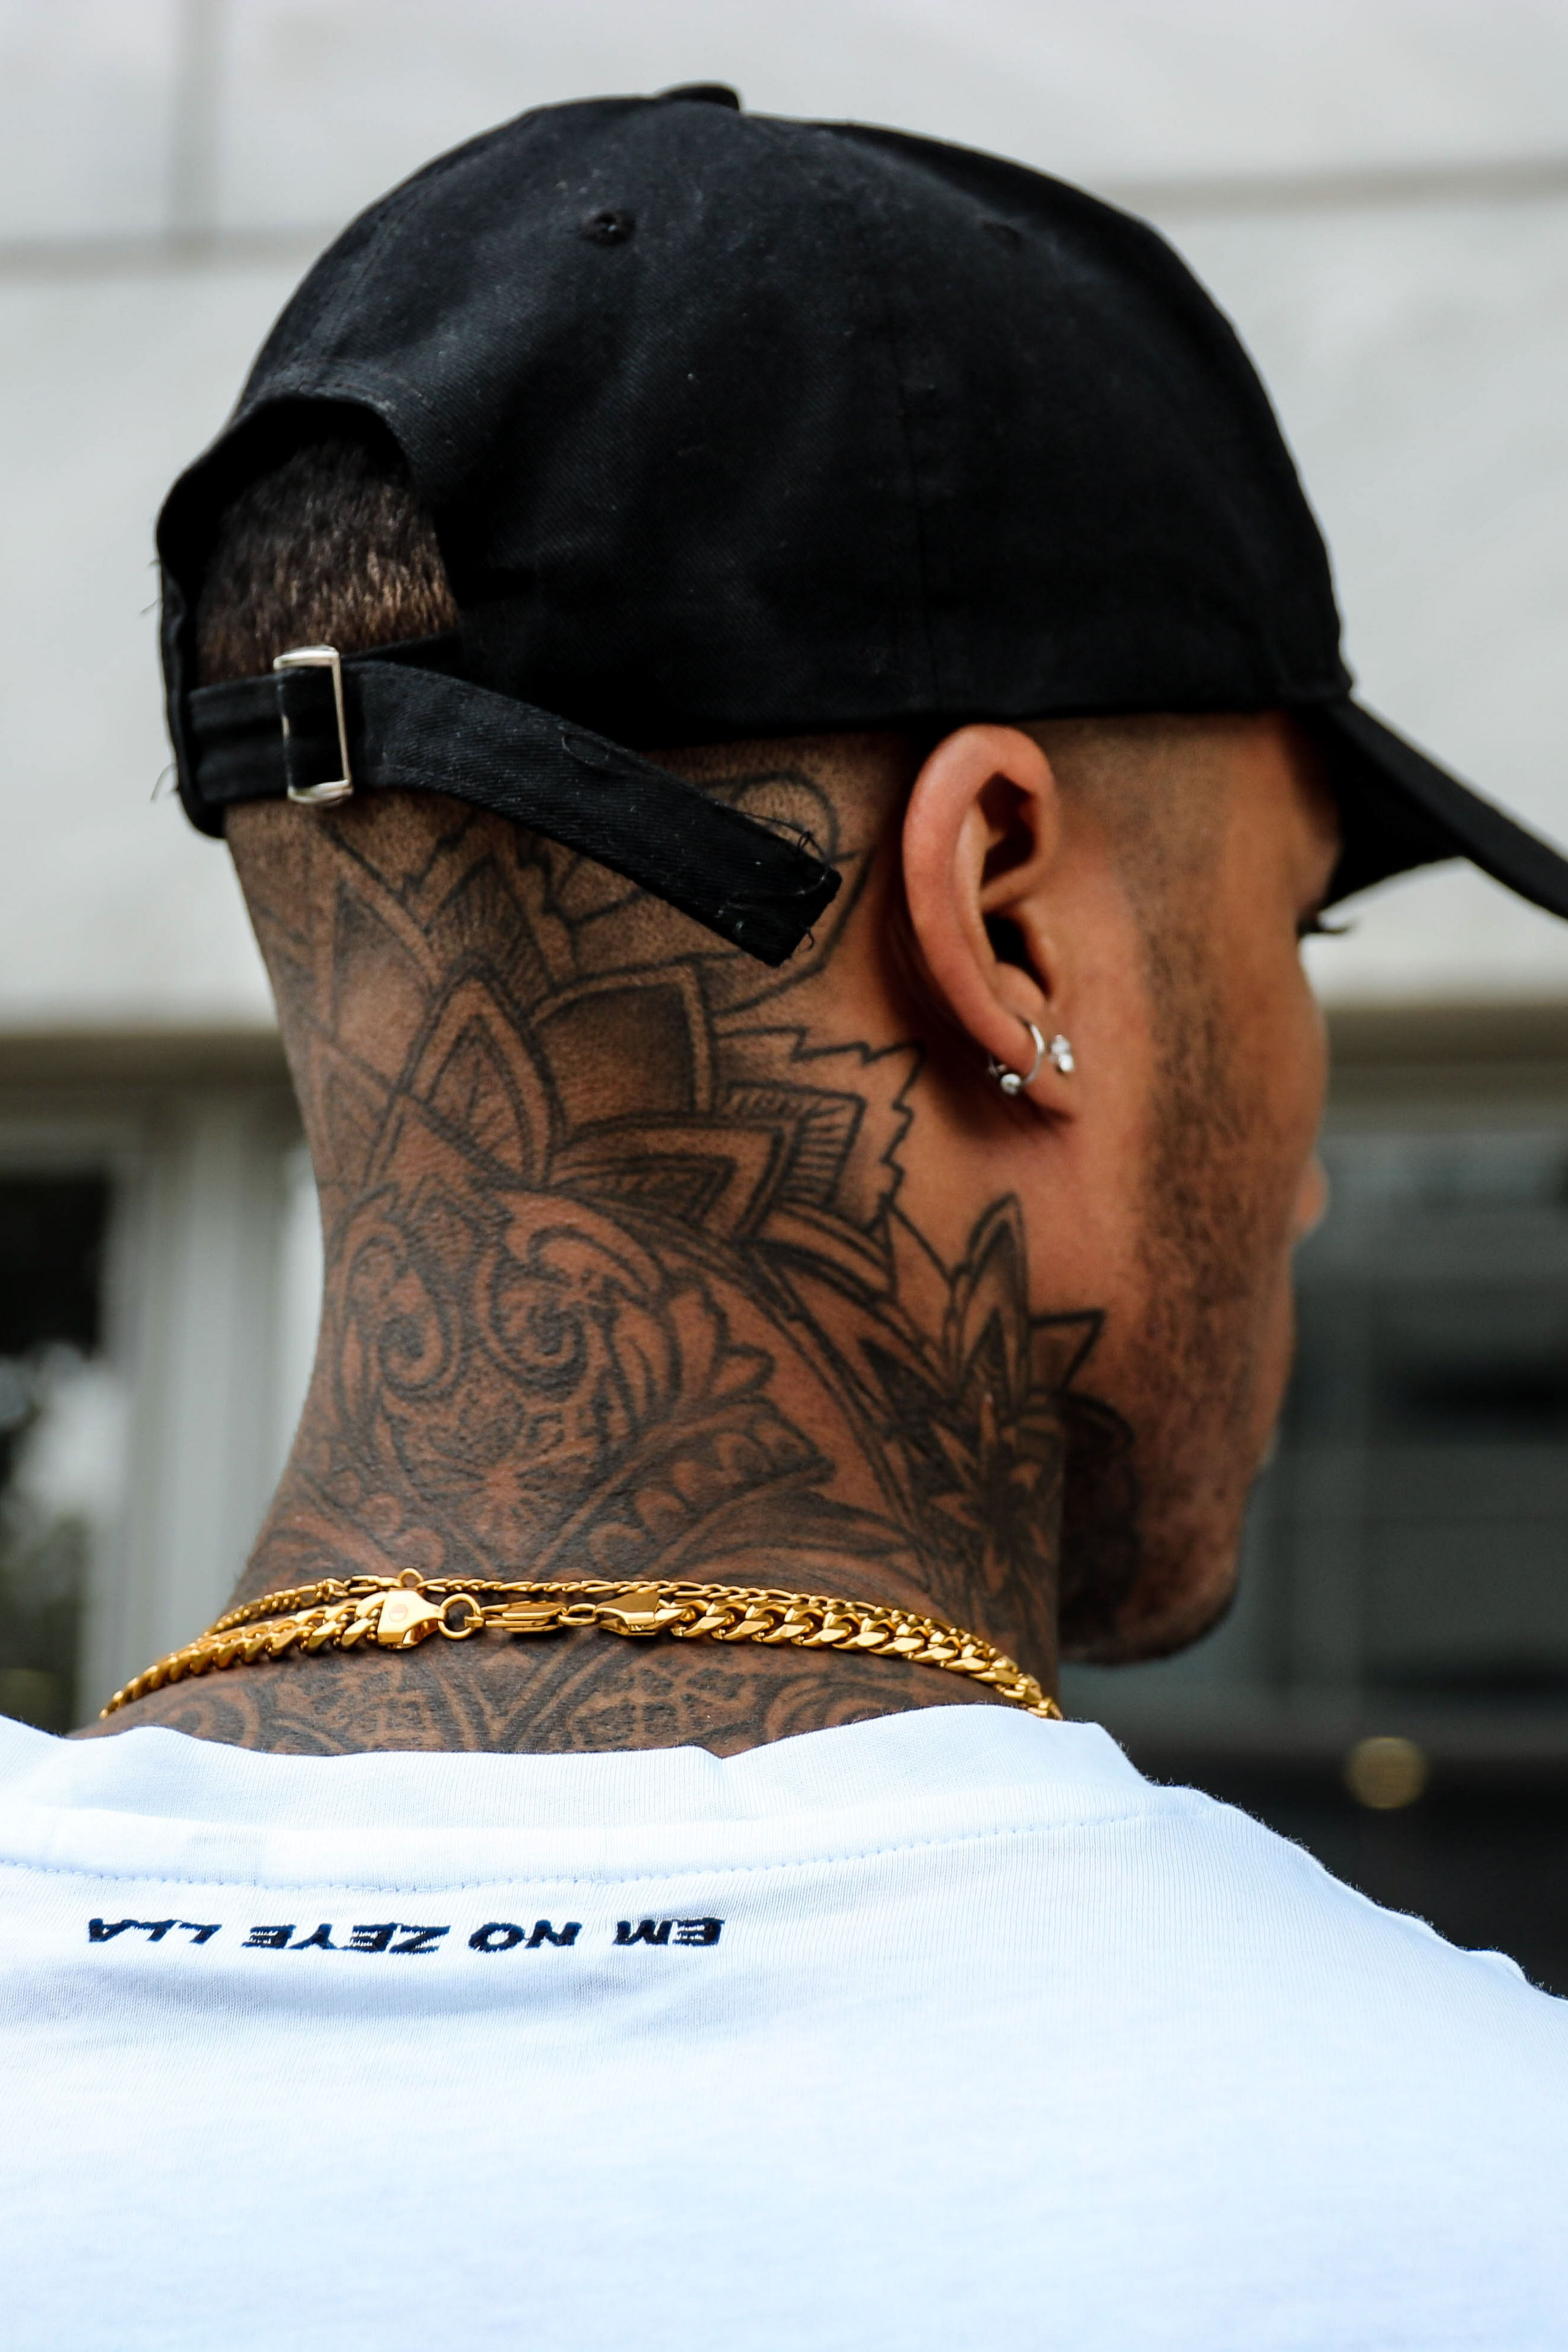 Pin by Chris on tattoos Back of neck tattoo men, Neck